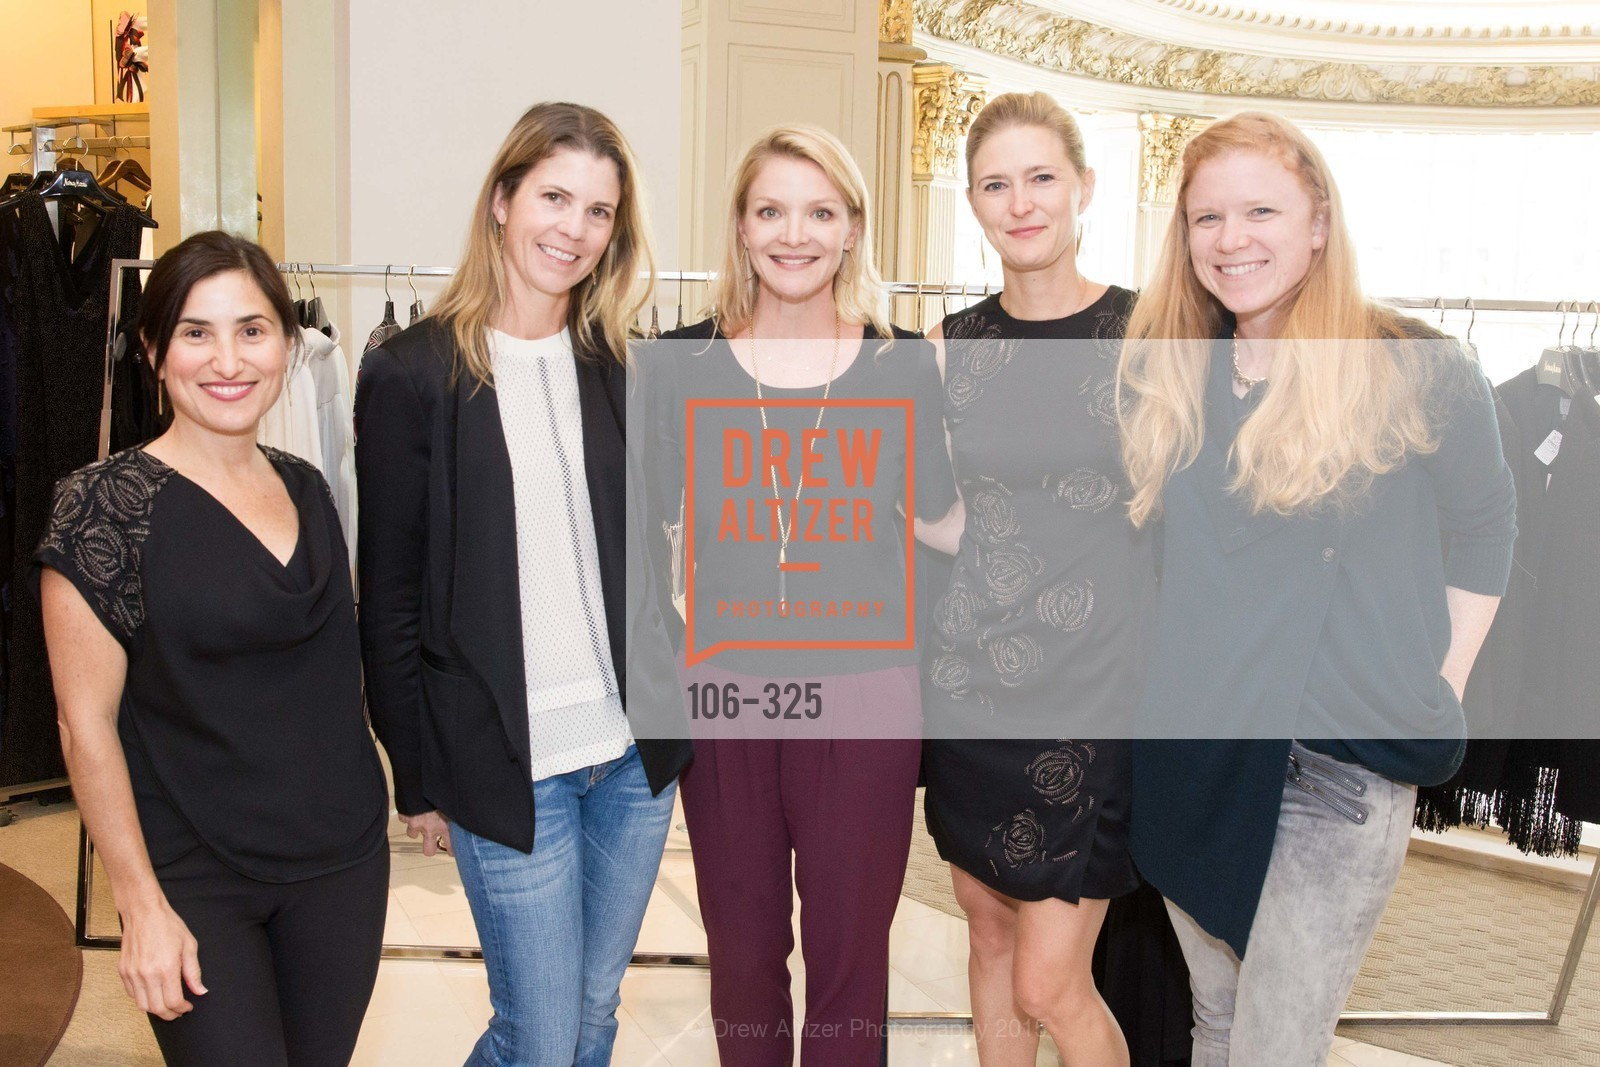 Zem Joaquin, Natasha Bradley, Kristy Caylor, Alicia Engstrom, Robyn Beavers, Maiyet Reception at Neiman Marcus, Neiman Marcus, September 29th, 2015,Drew Altizer, Drew Altizer Photography, full-service event agency, private events, San Francisco photographer, photographer California